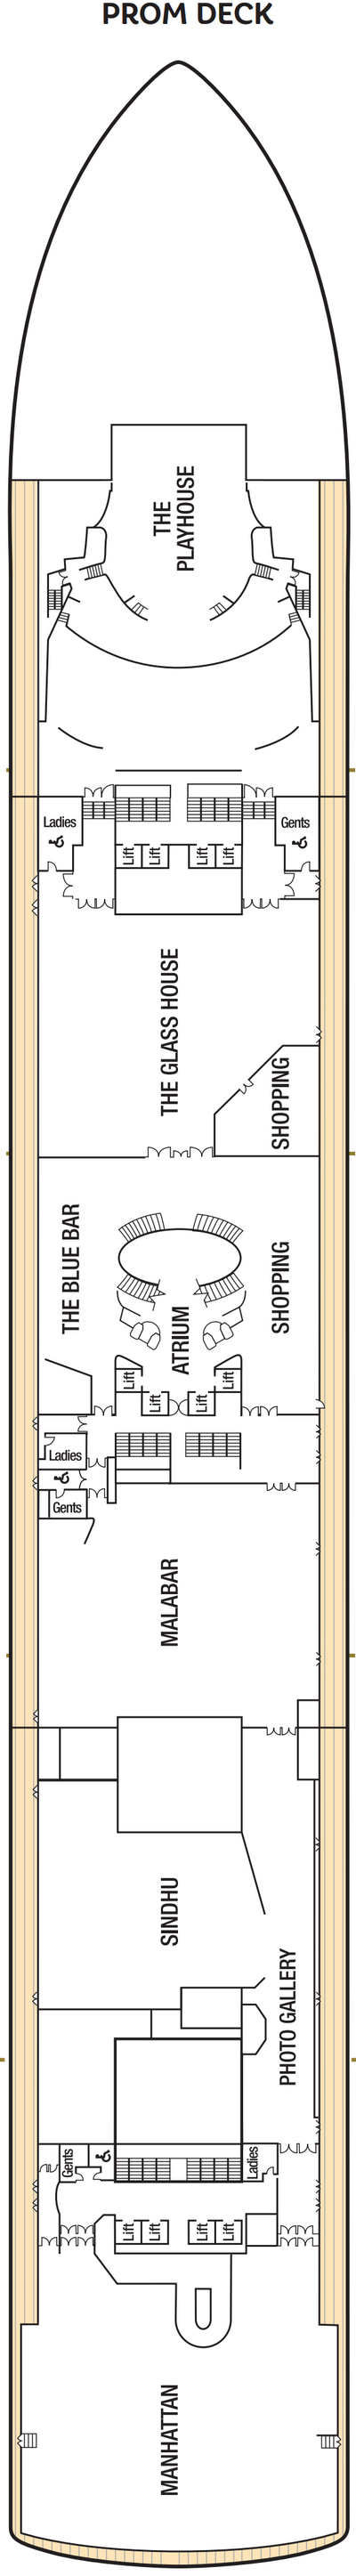 Azura Promenade Deck layout